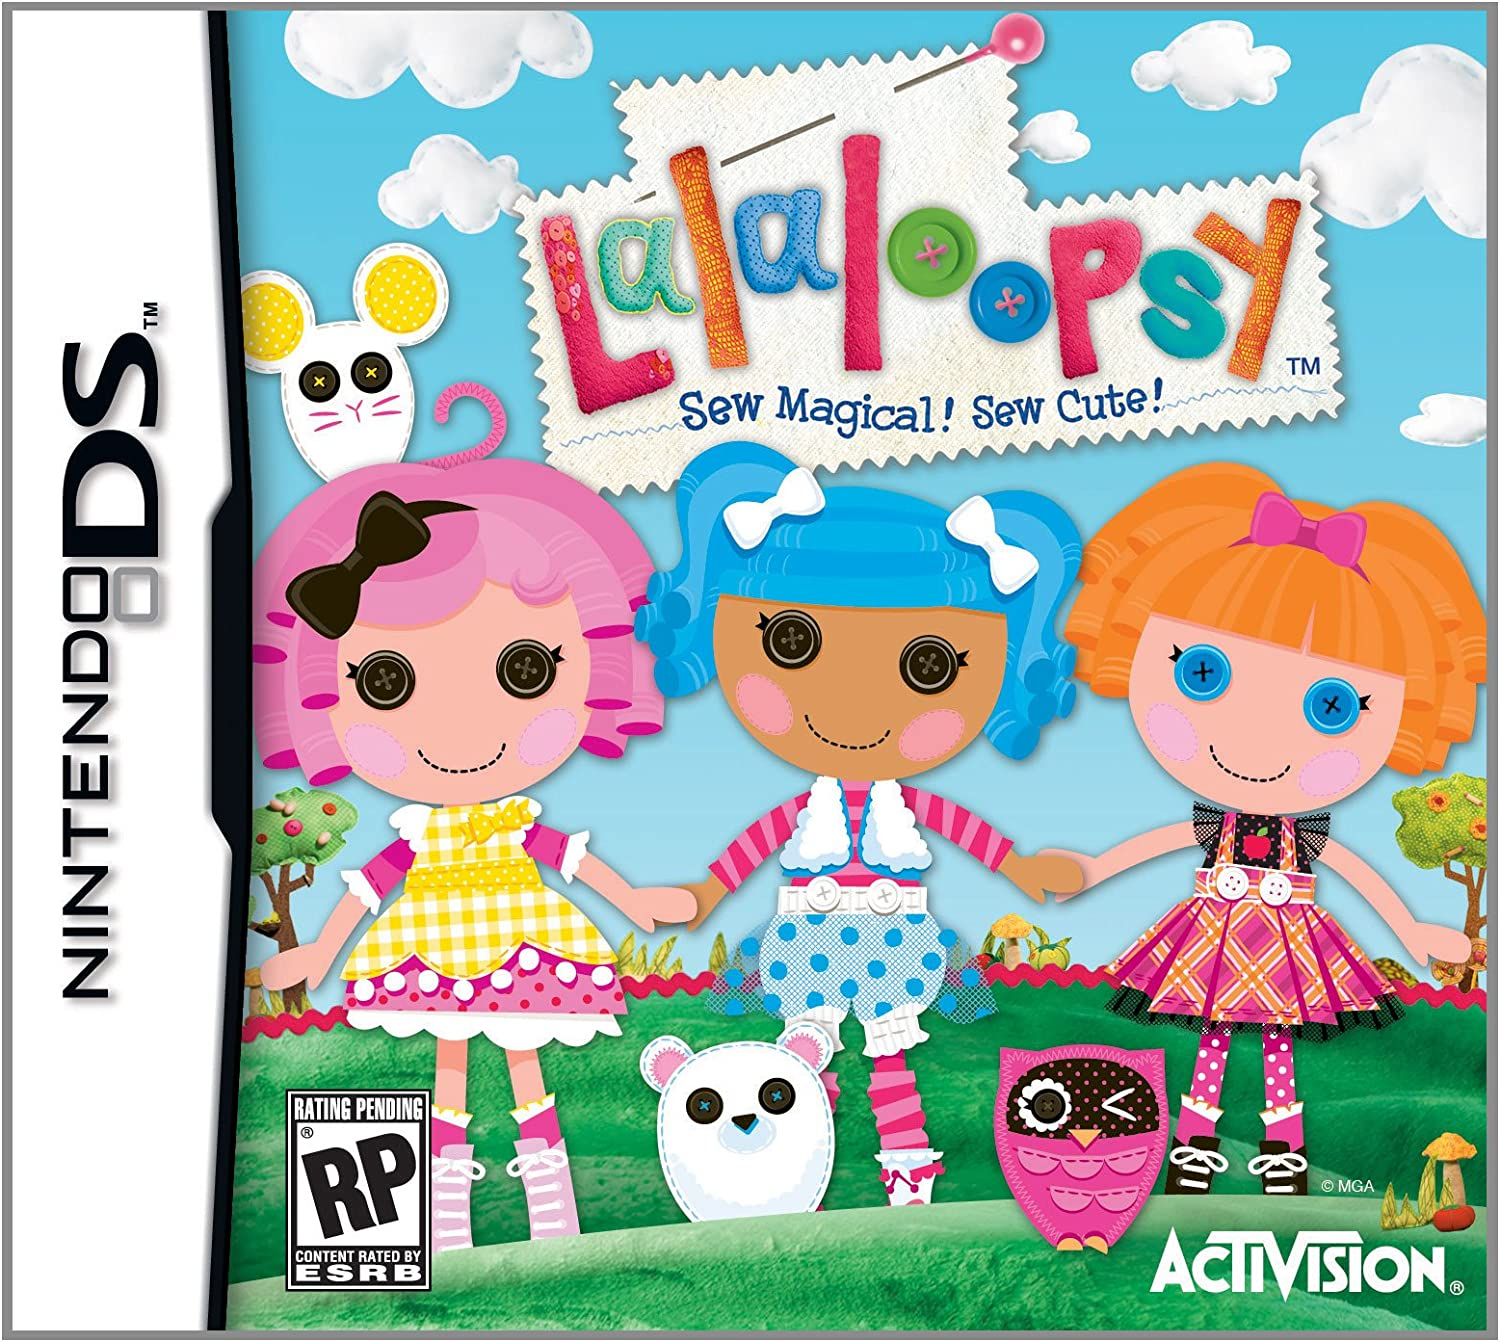 Amazon.com: Lalaloopsy - Nintendo DS: Activision Inc: Video Games